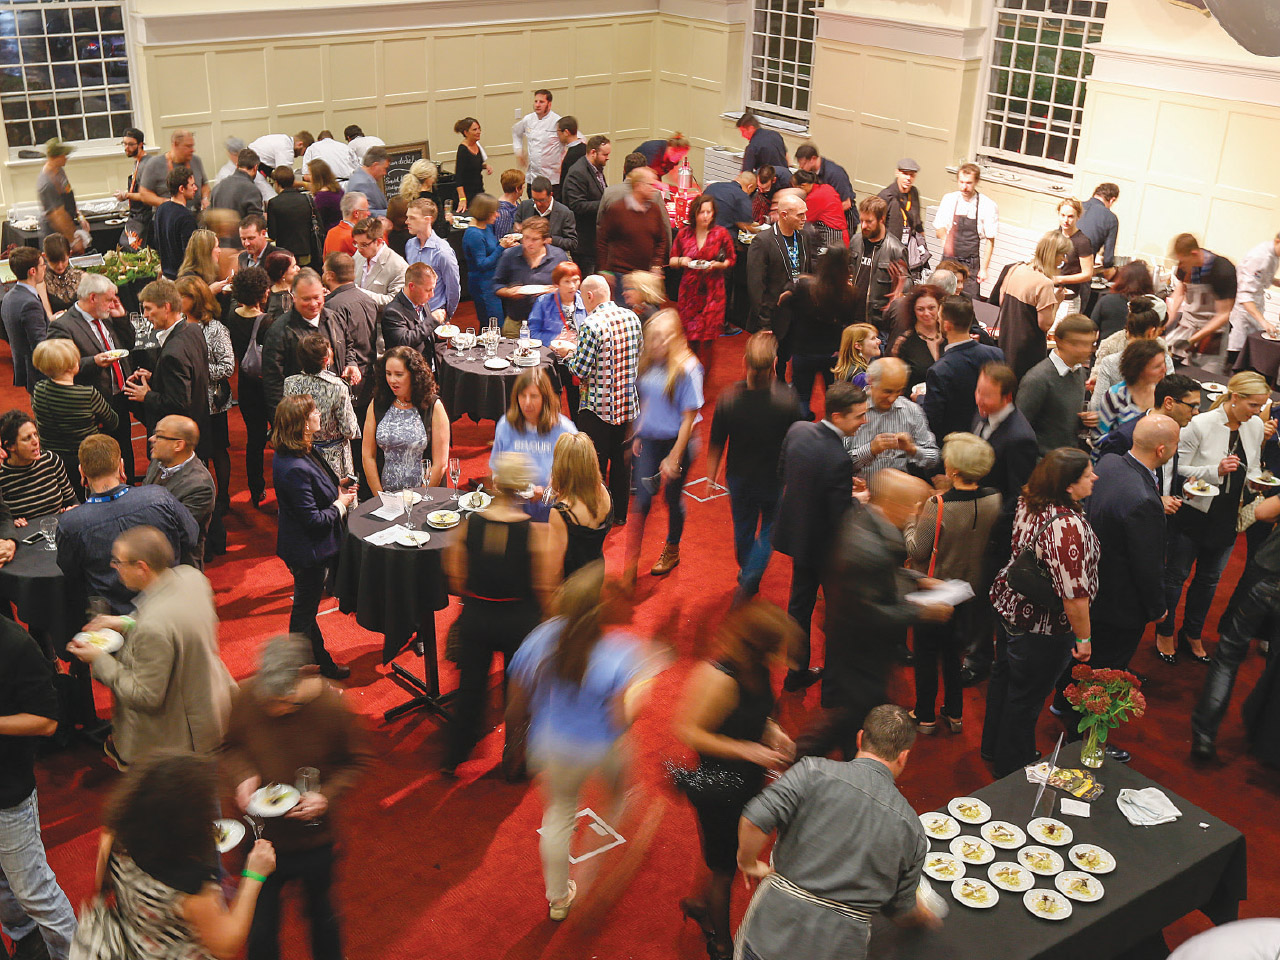 Devour Opening Gala Reception presented by Taste of Nova Scotia